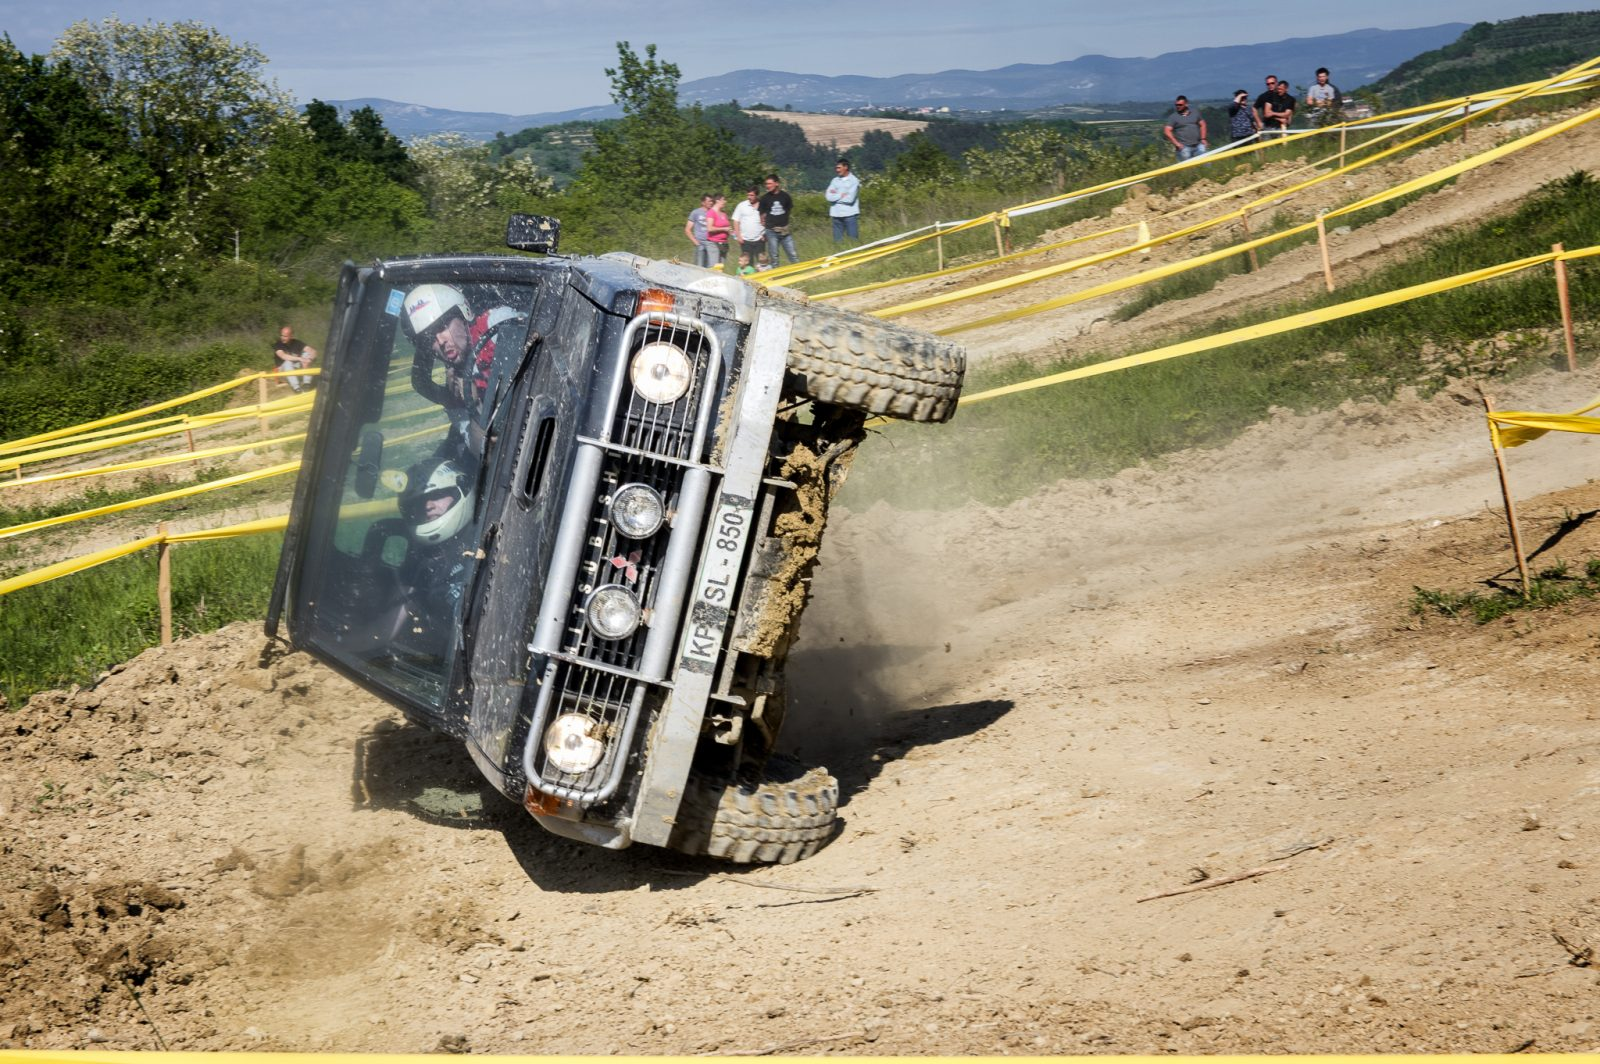 MOTOVUN OFF ROAD